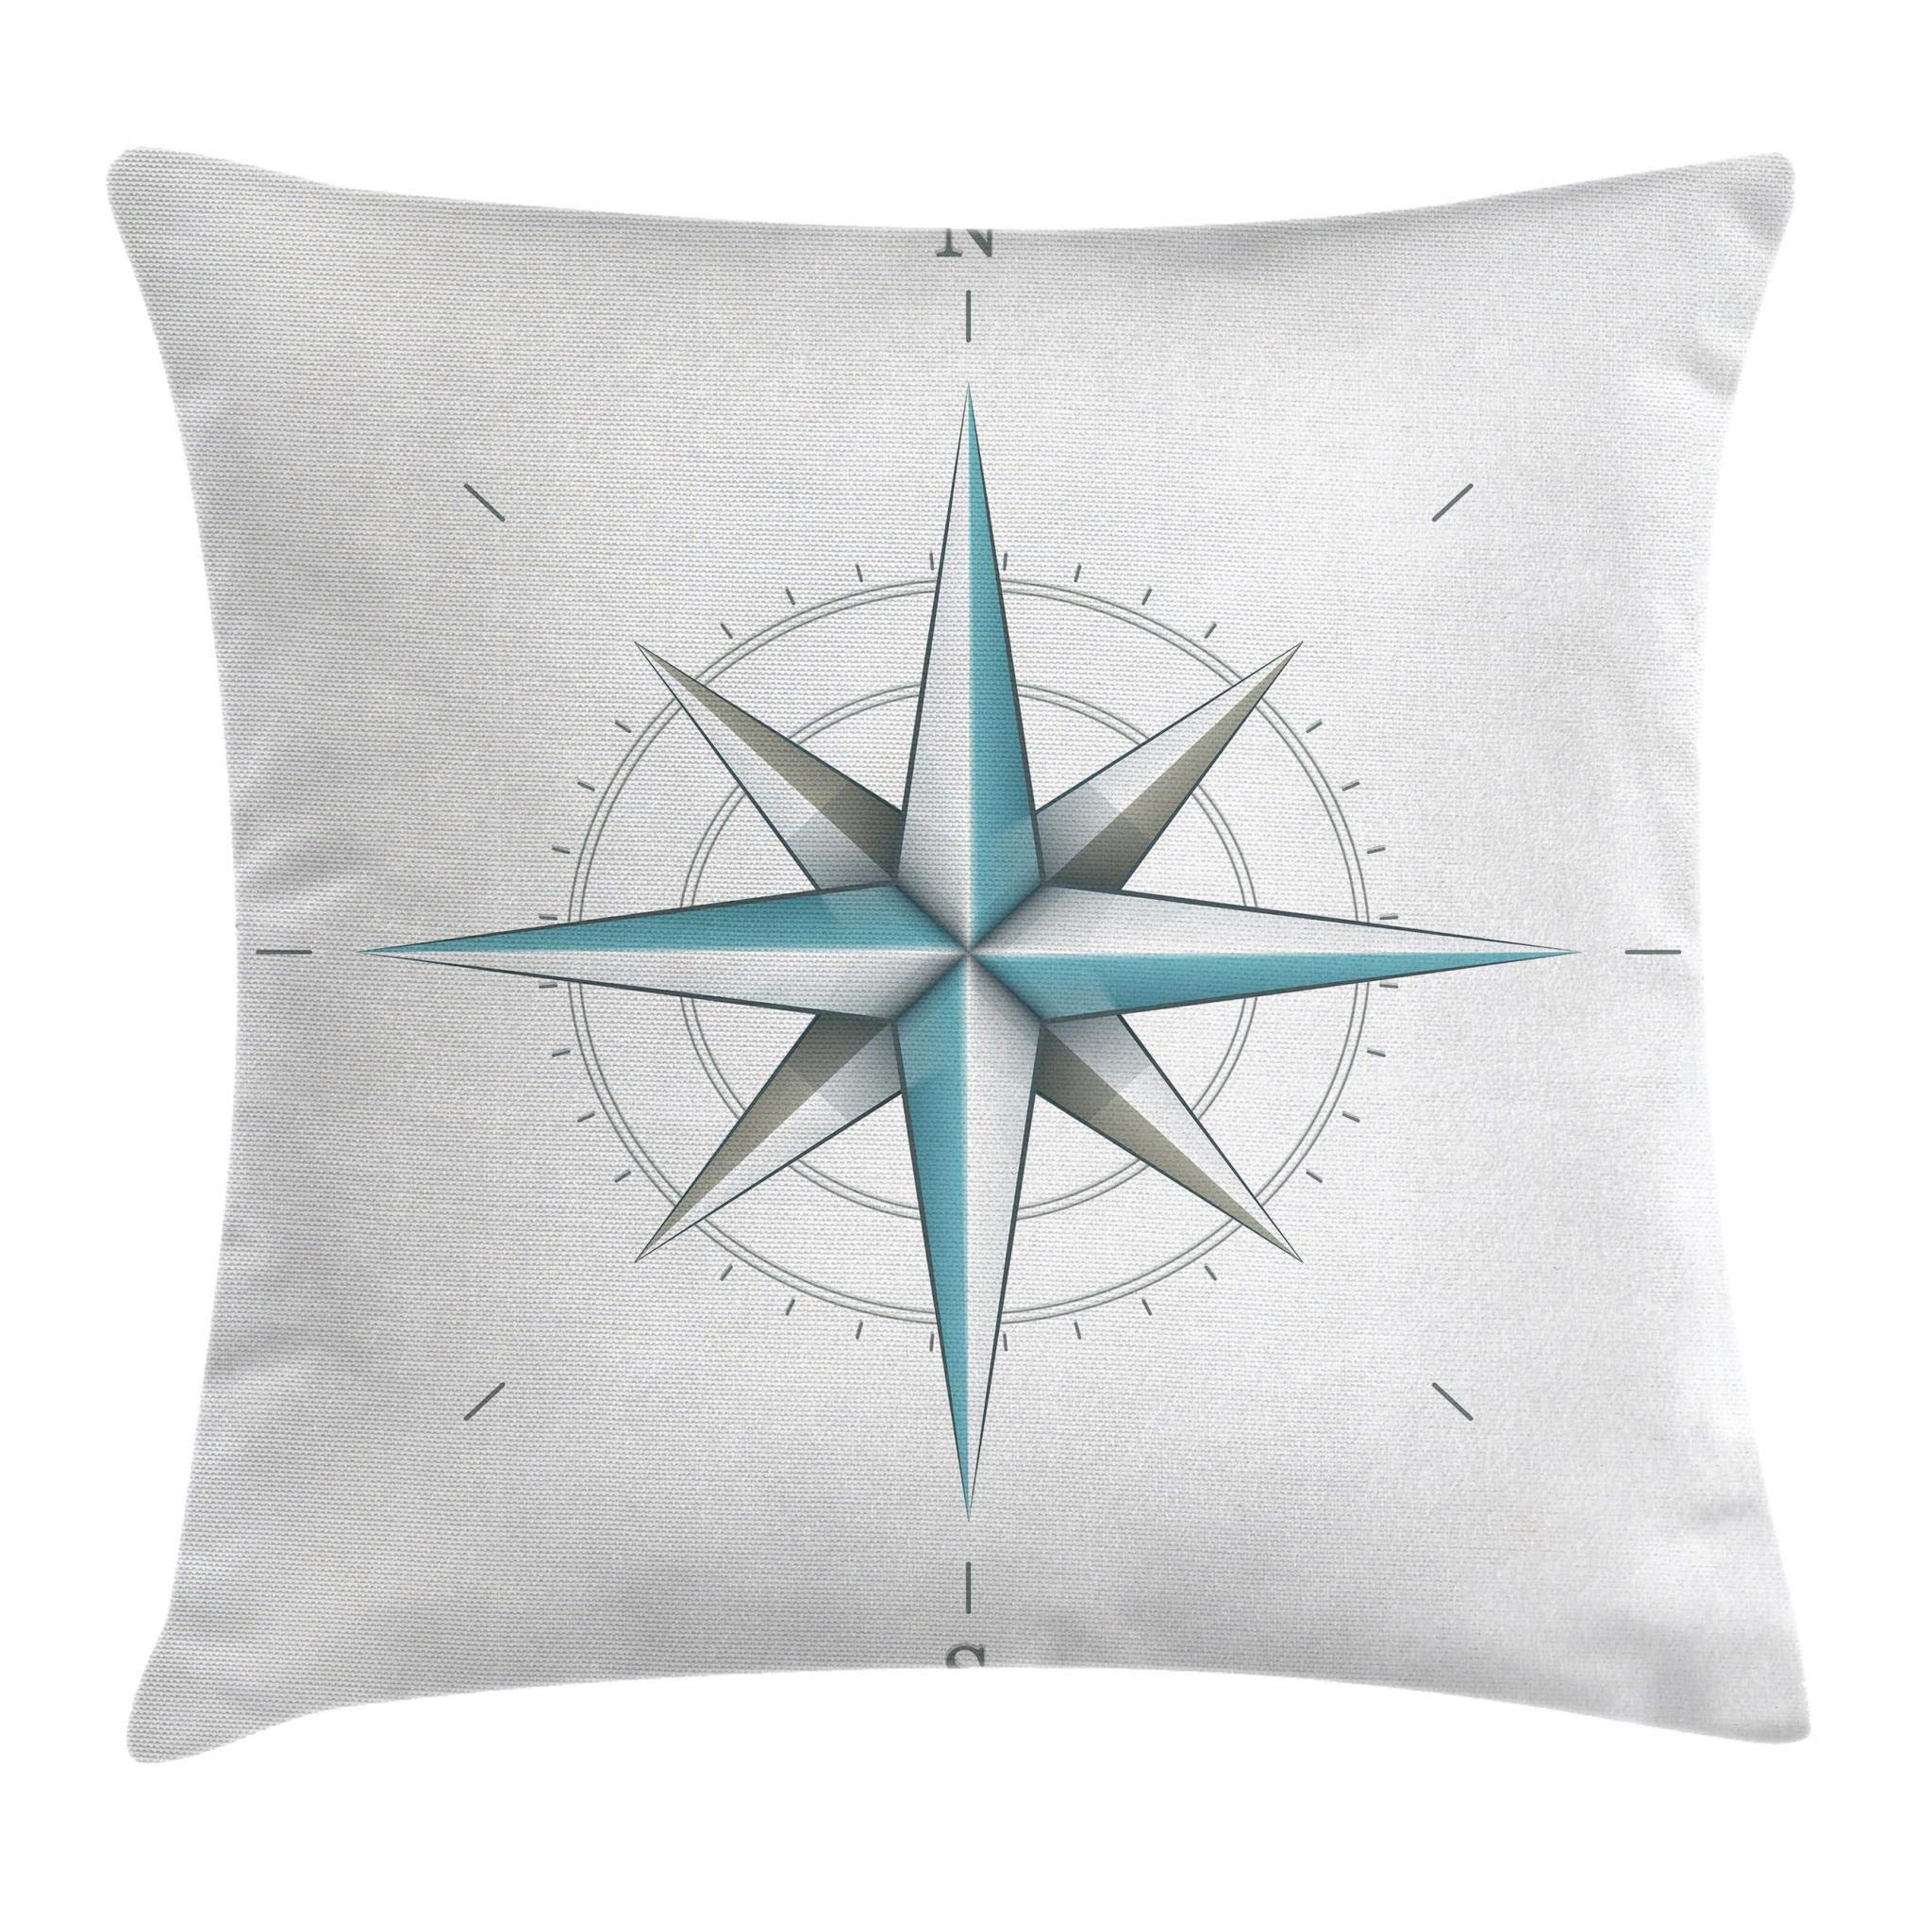 Ambesonne Compass Throw Pillow Cushion Cover, Antique Wind Rose Diagram for Cardinal Directions Axis of Earth Illustration, Decorative Square Accent Pillow Case, 24'' X 24'', Teal Dimgray by Ambesonne